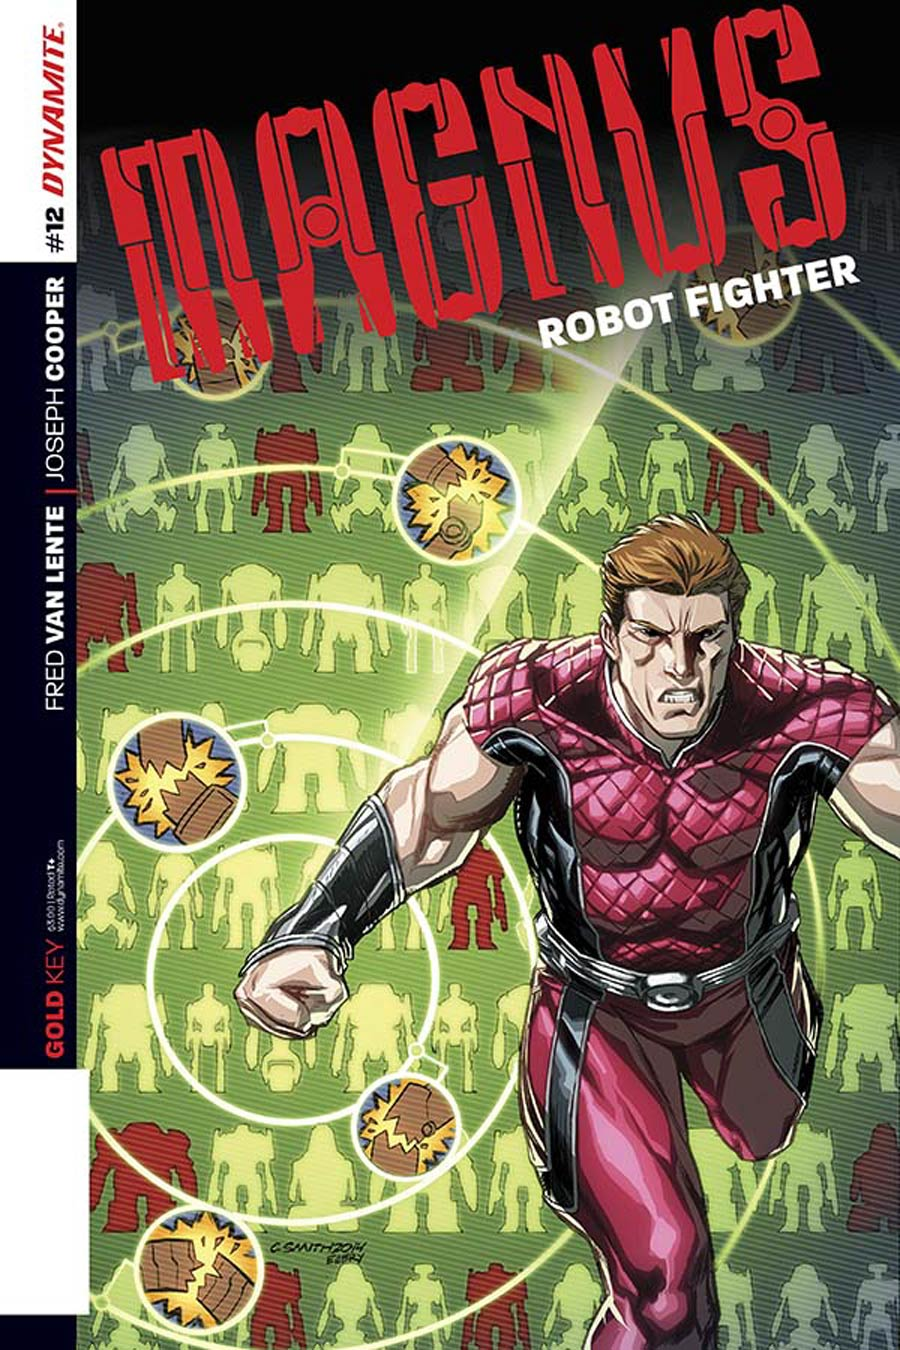 Magnus Robot Fighter Vol 4 #12 Cover B Variant Cory Smith Subscription Cover